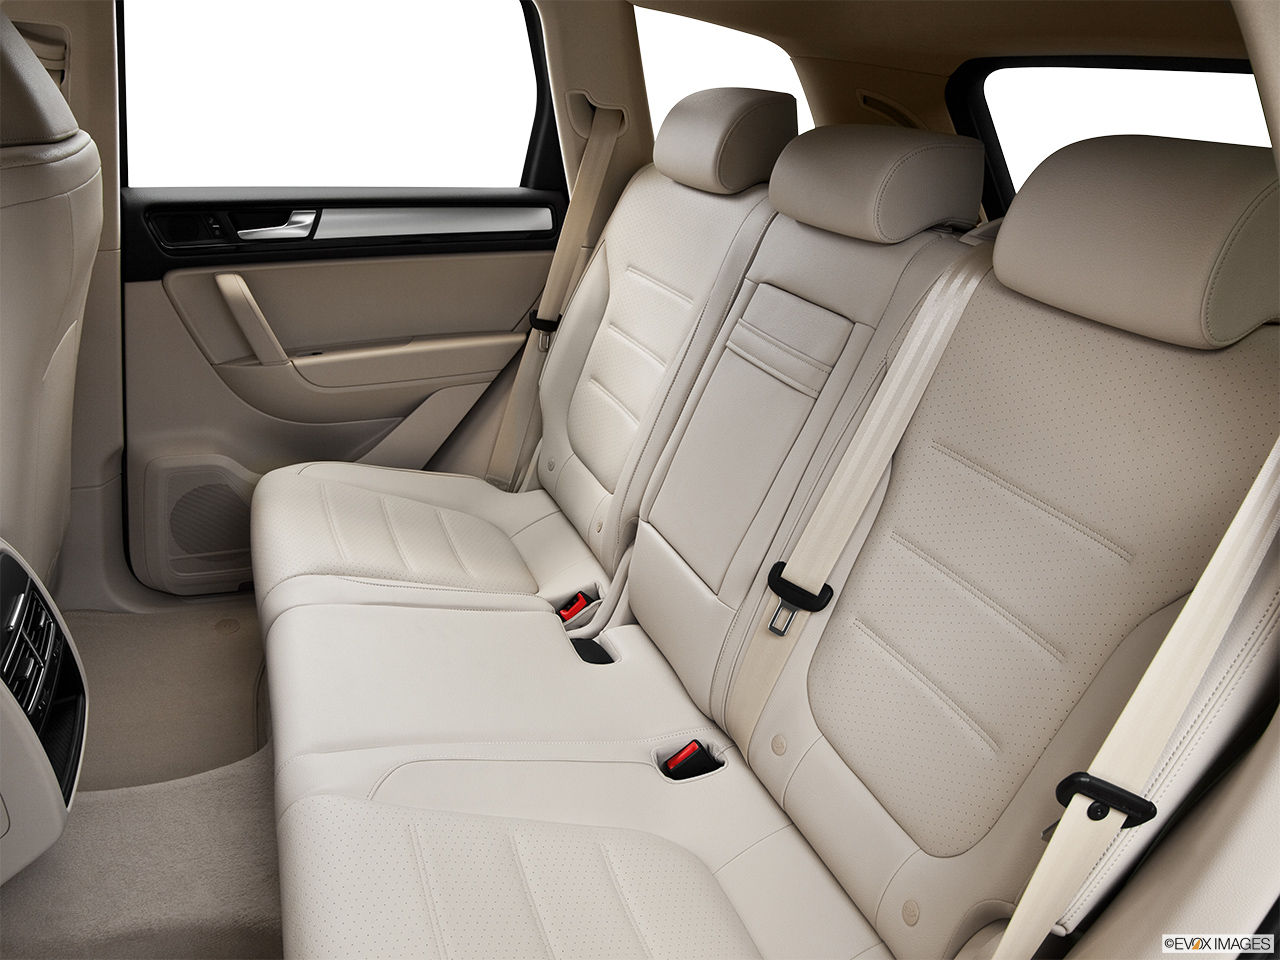 2014 Volkswagen Touareg 2 V6 Sport Rear seats from Drivers Side.